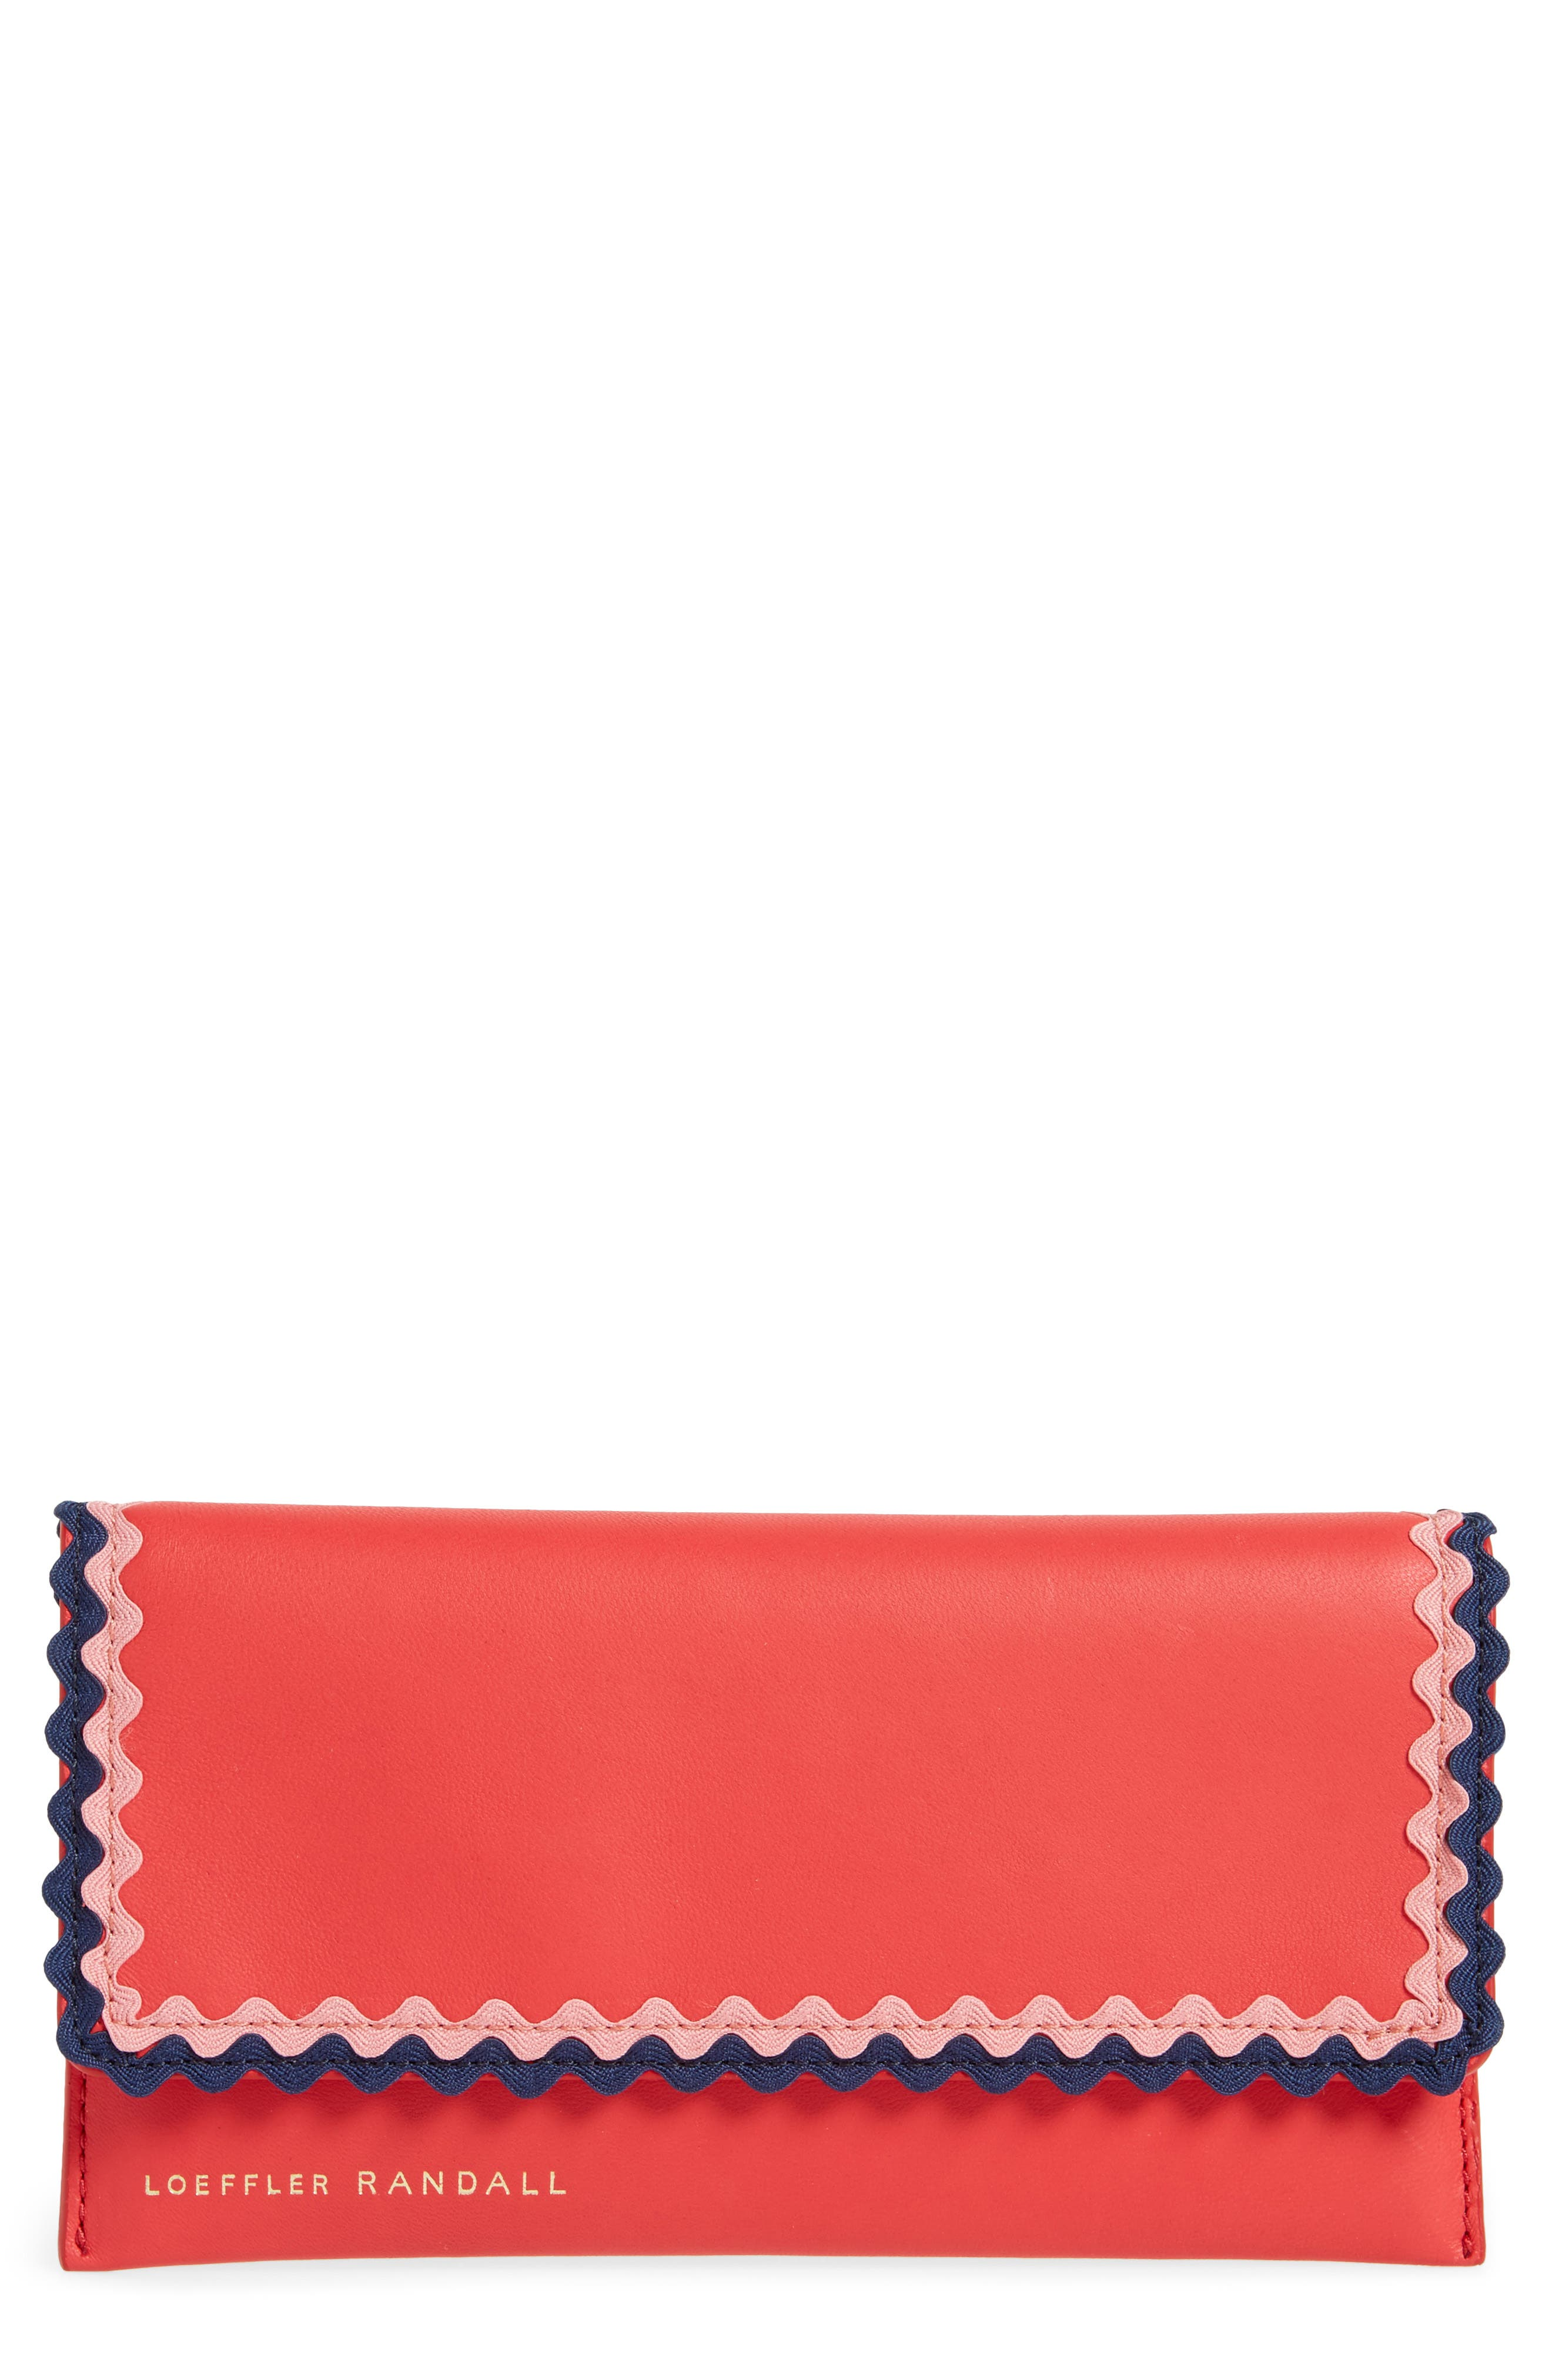 Everything Embellished Leather Wallet,                         Main,                         color, Bright Red/ Multi